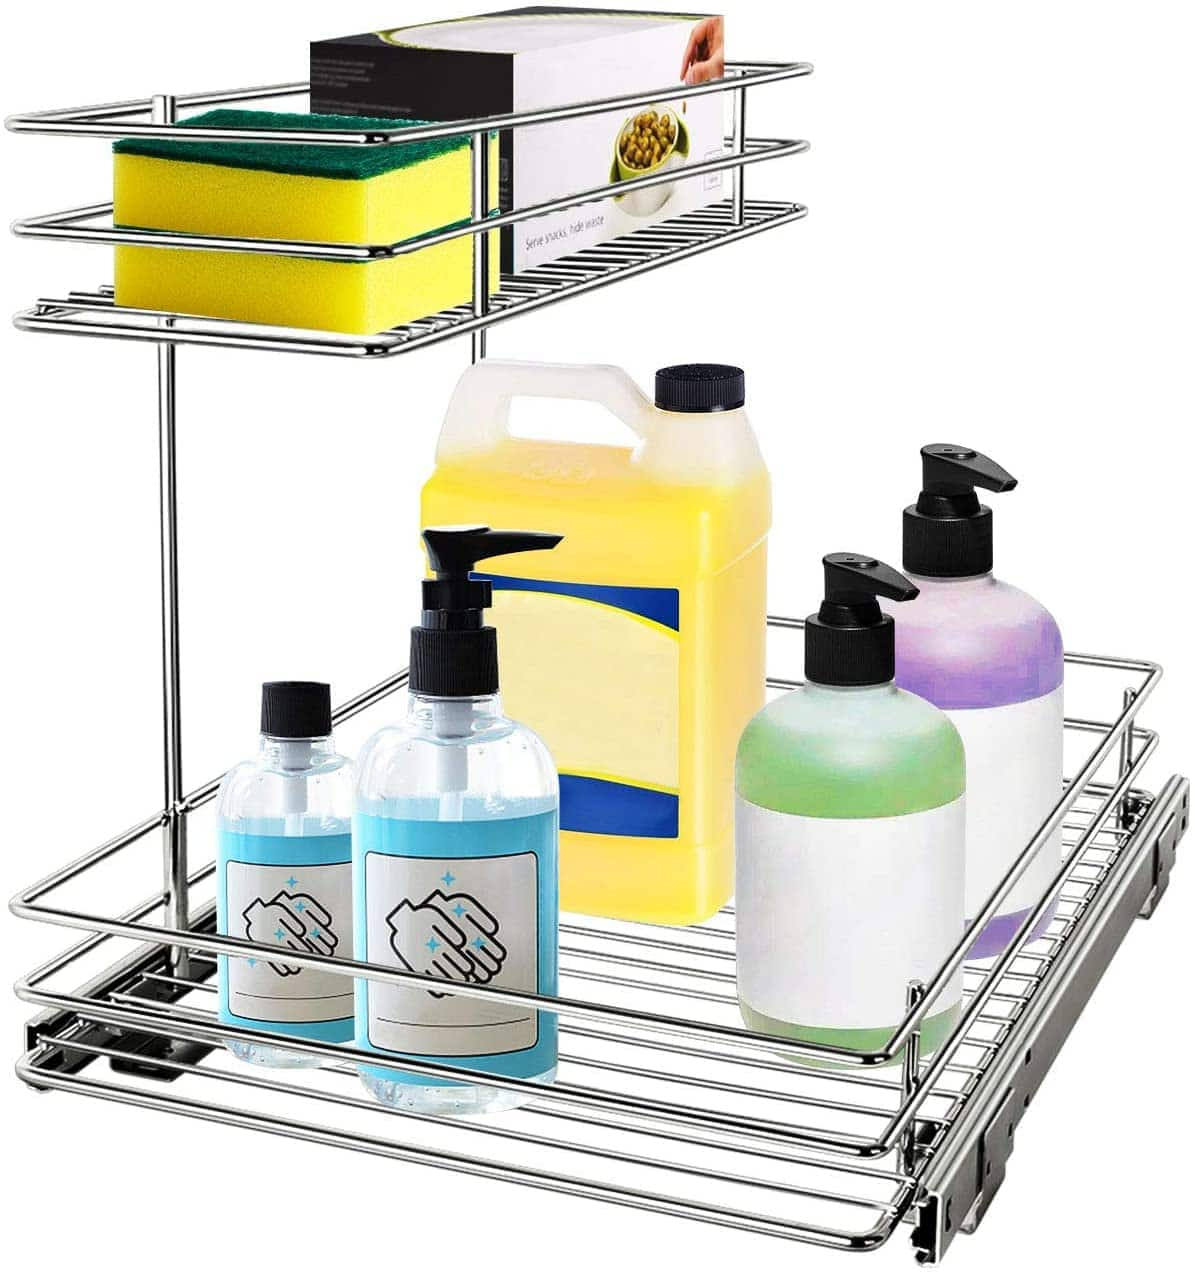 G-TING Pull Out Cabinet Organizer, Under Sink Slide Out Storage Shelf with 2 Tier Sliding Wire Drawer $26.49 + FS with PRIME